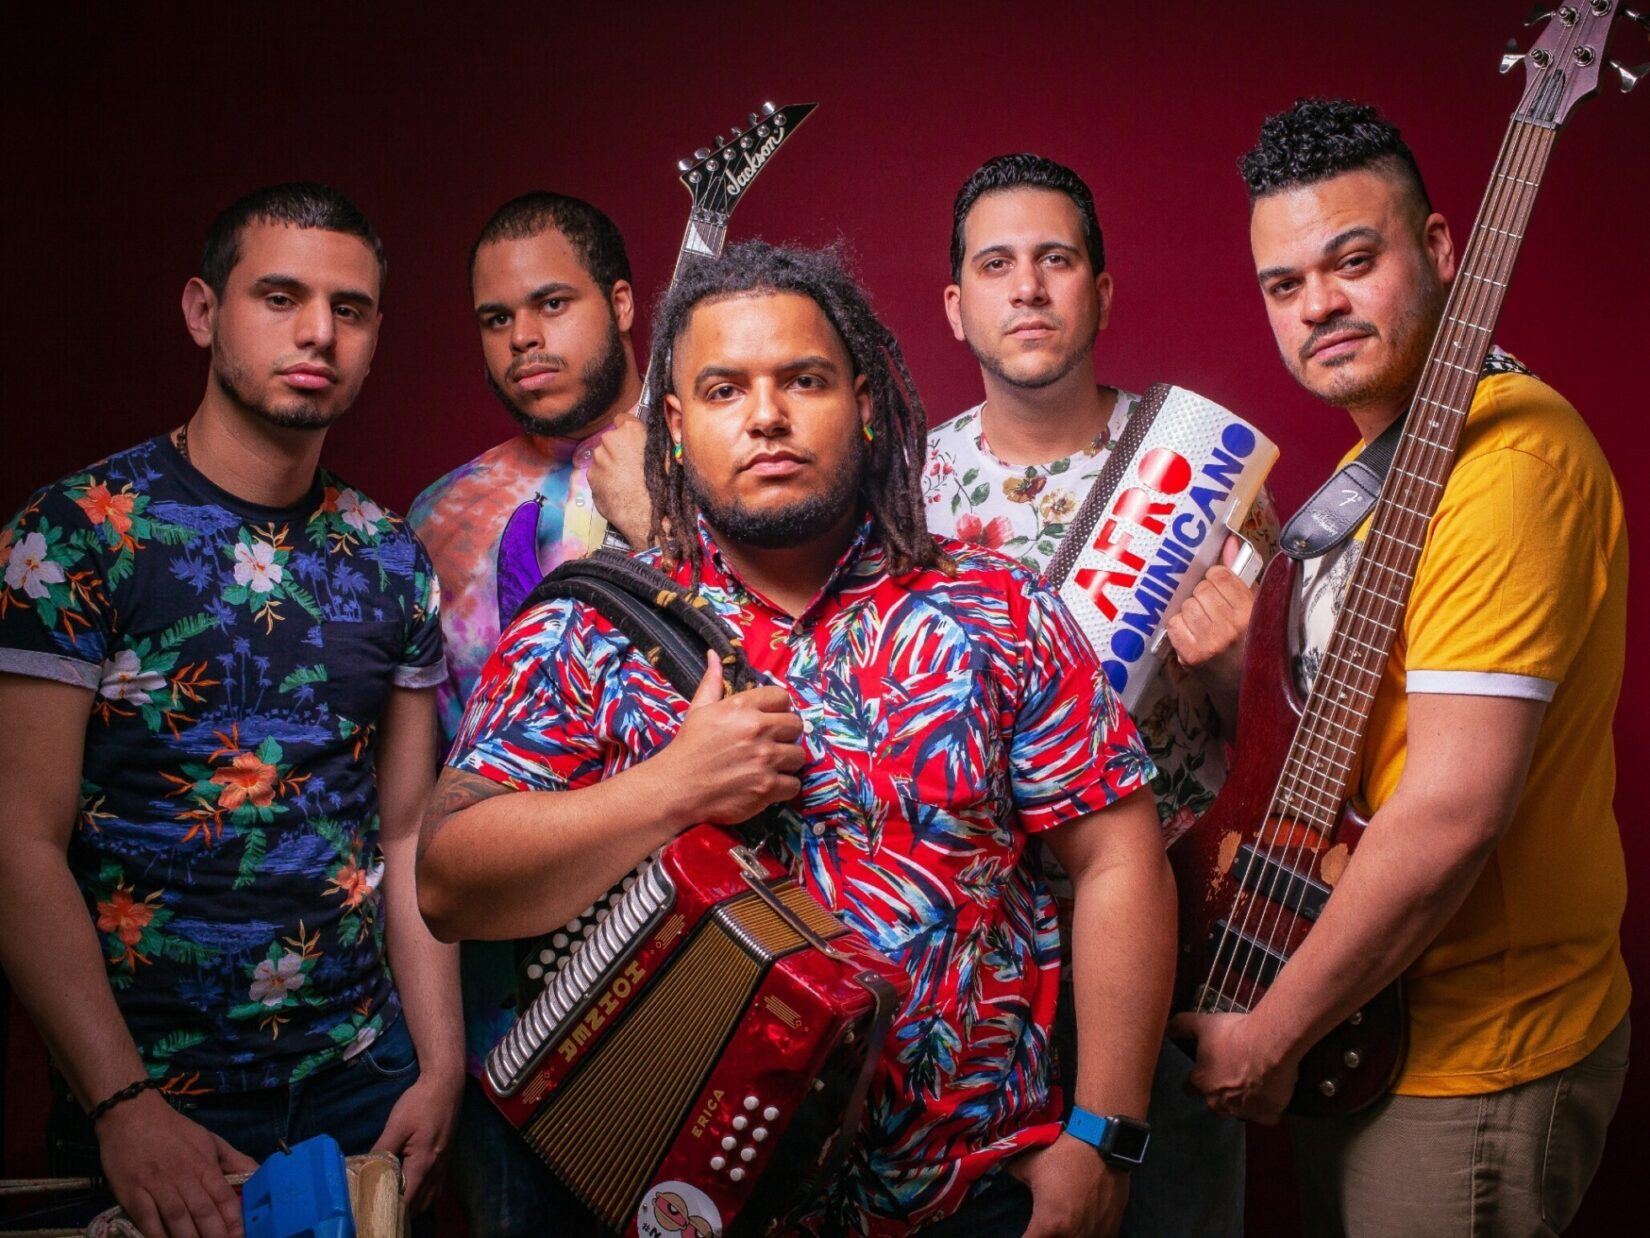 Members of the band pictured with their instruments against a red backdrop.